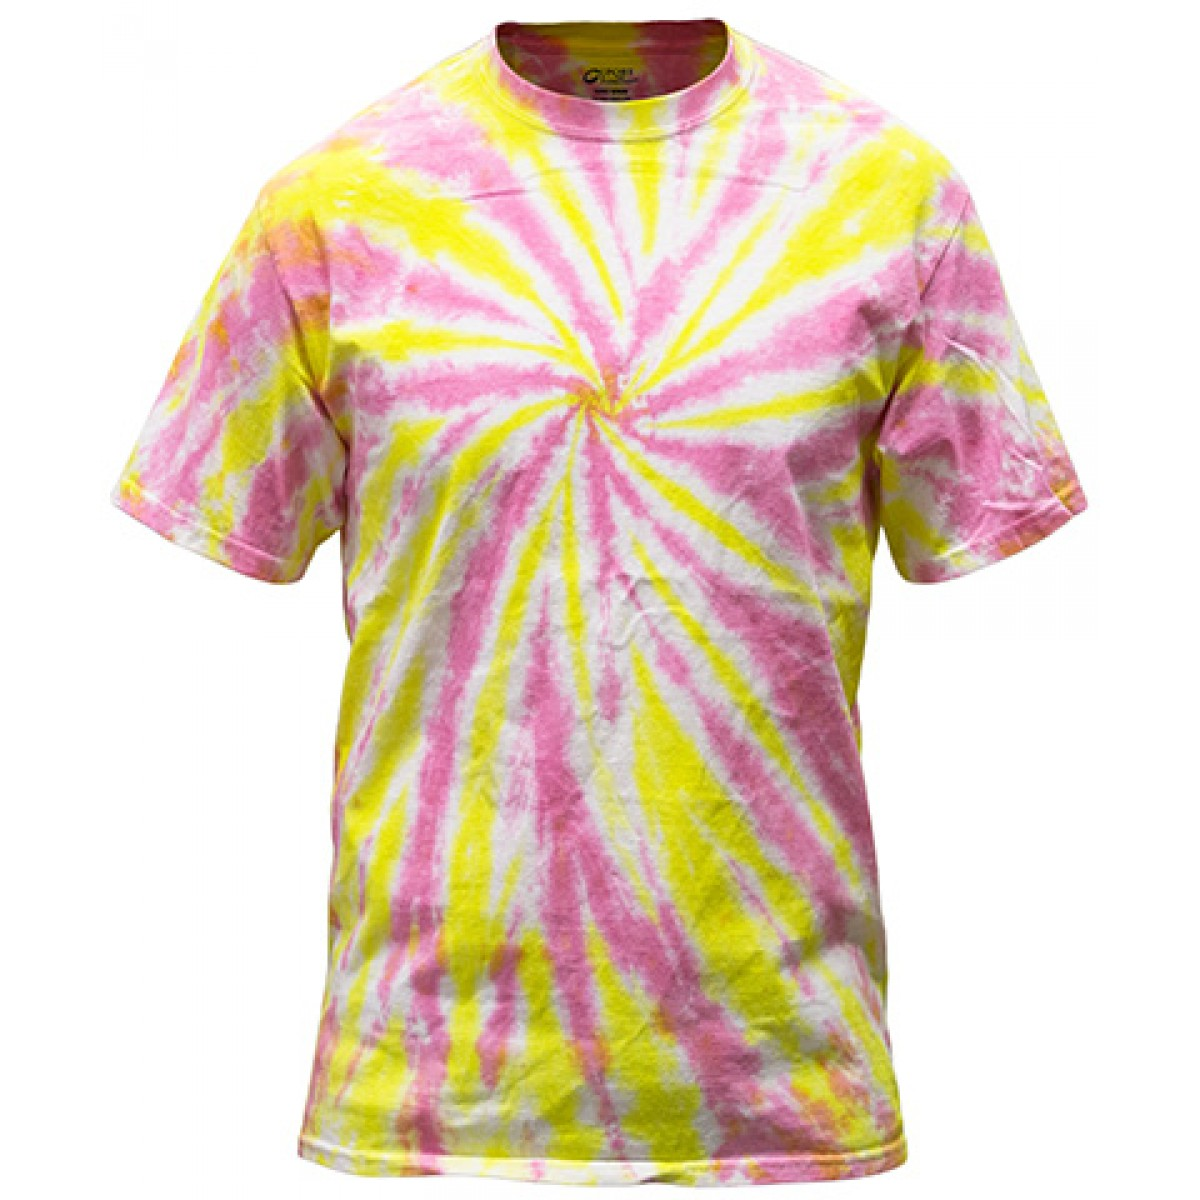 Multi-Color Tie-Dye Tee -Pink/Yellow-YL